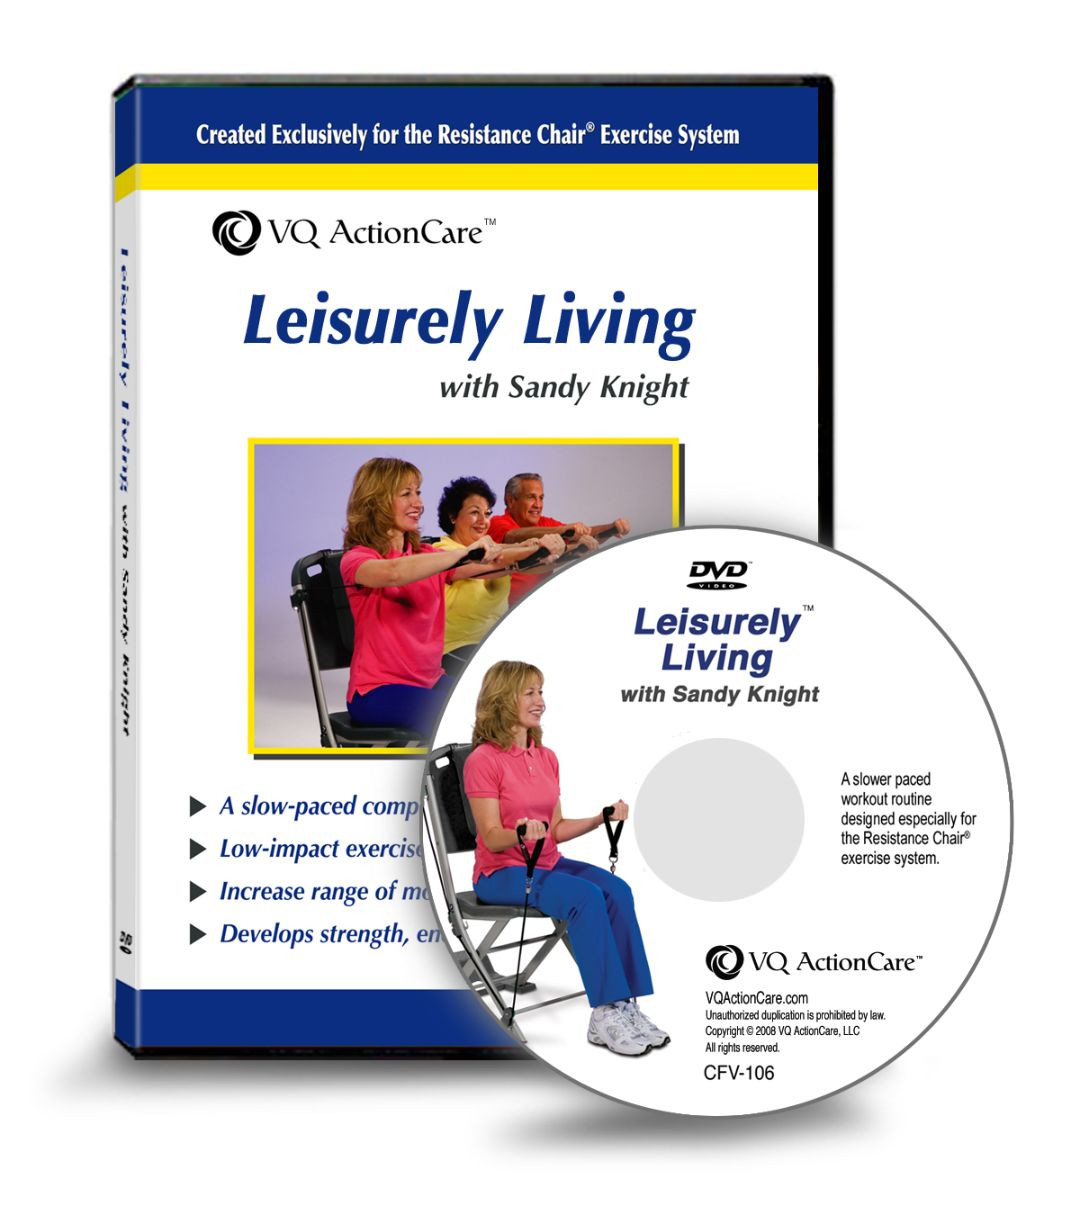 chair gym dvd set dining table and chairs for sale leisurely living resistance exercise system